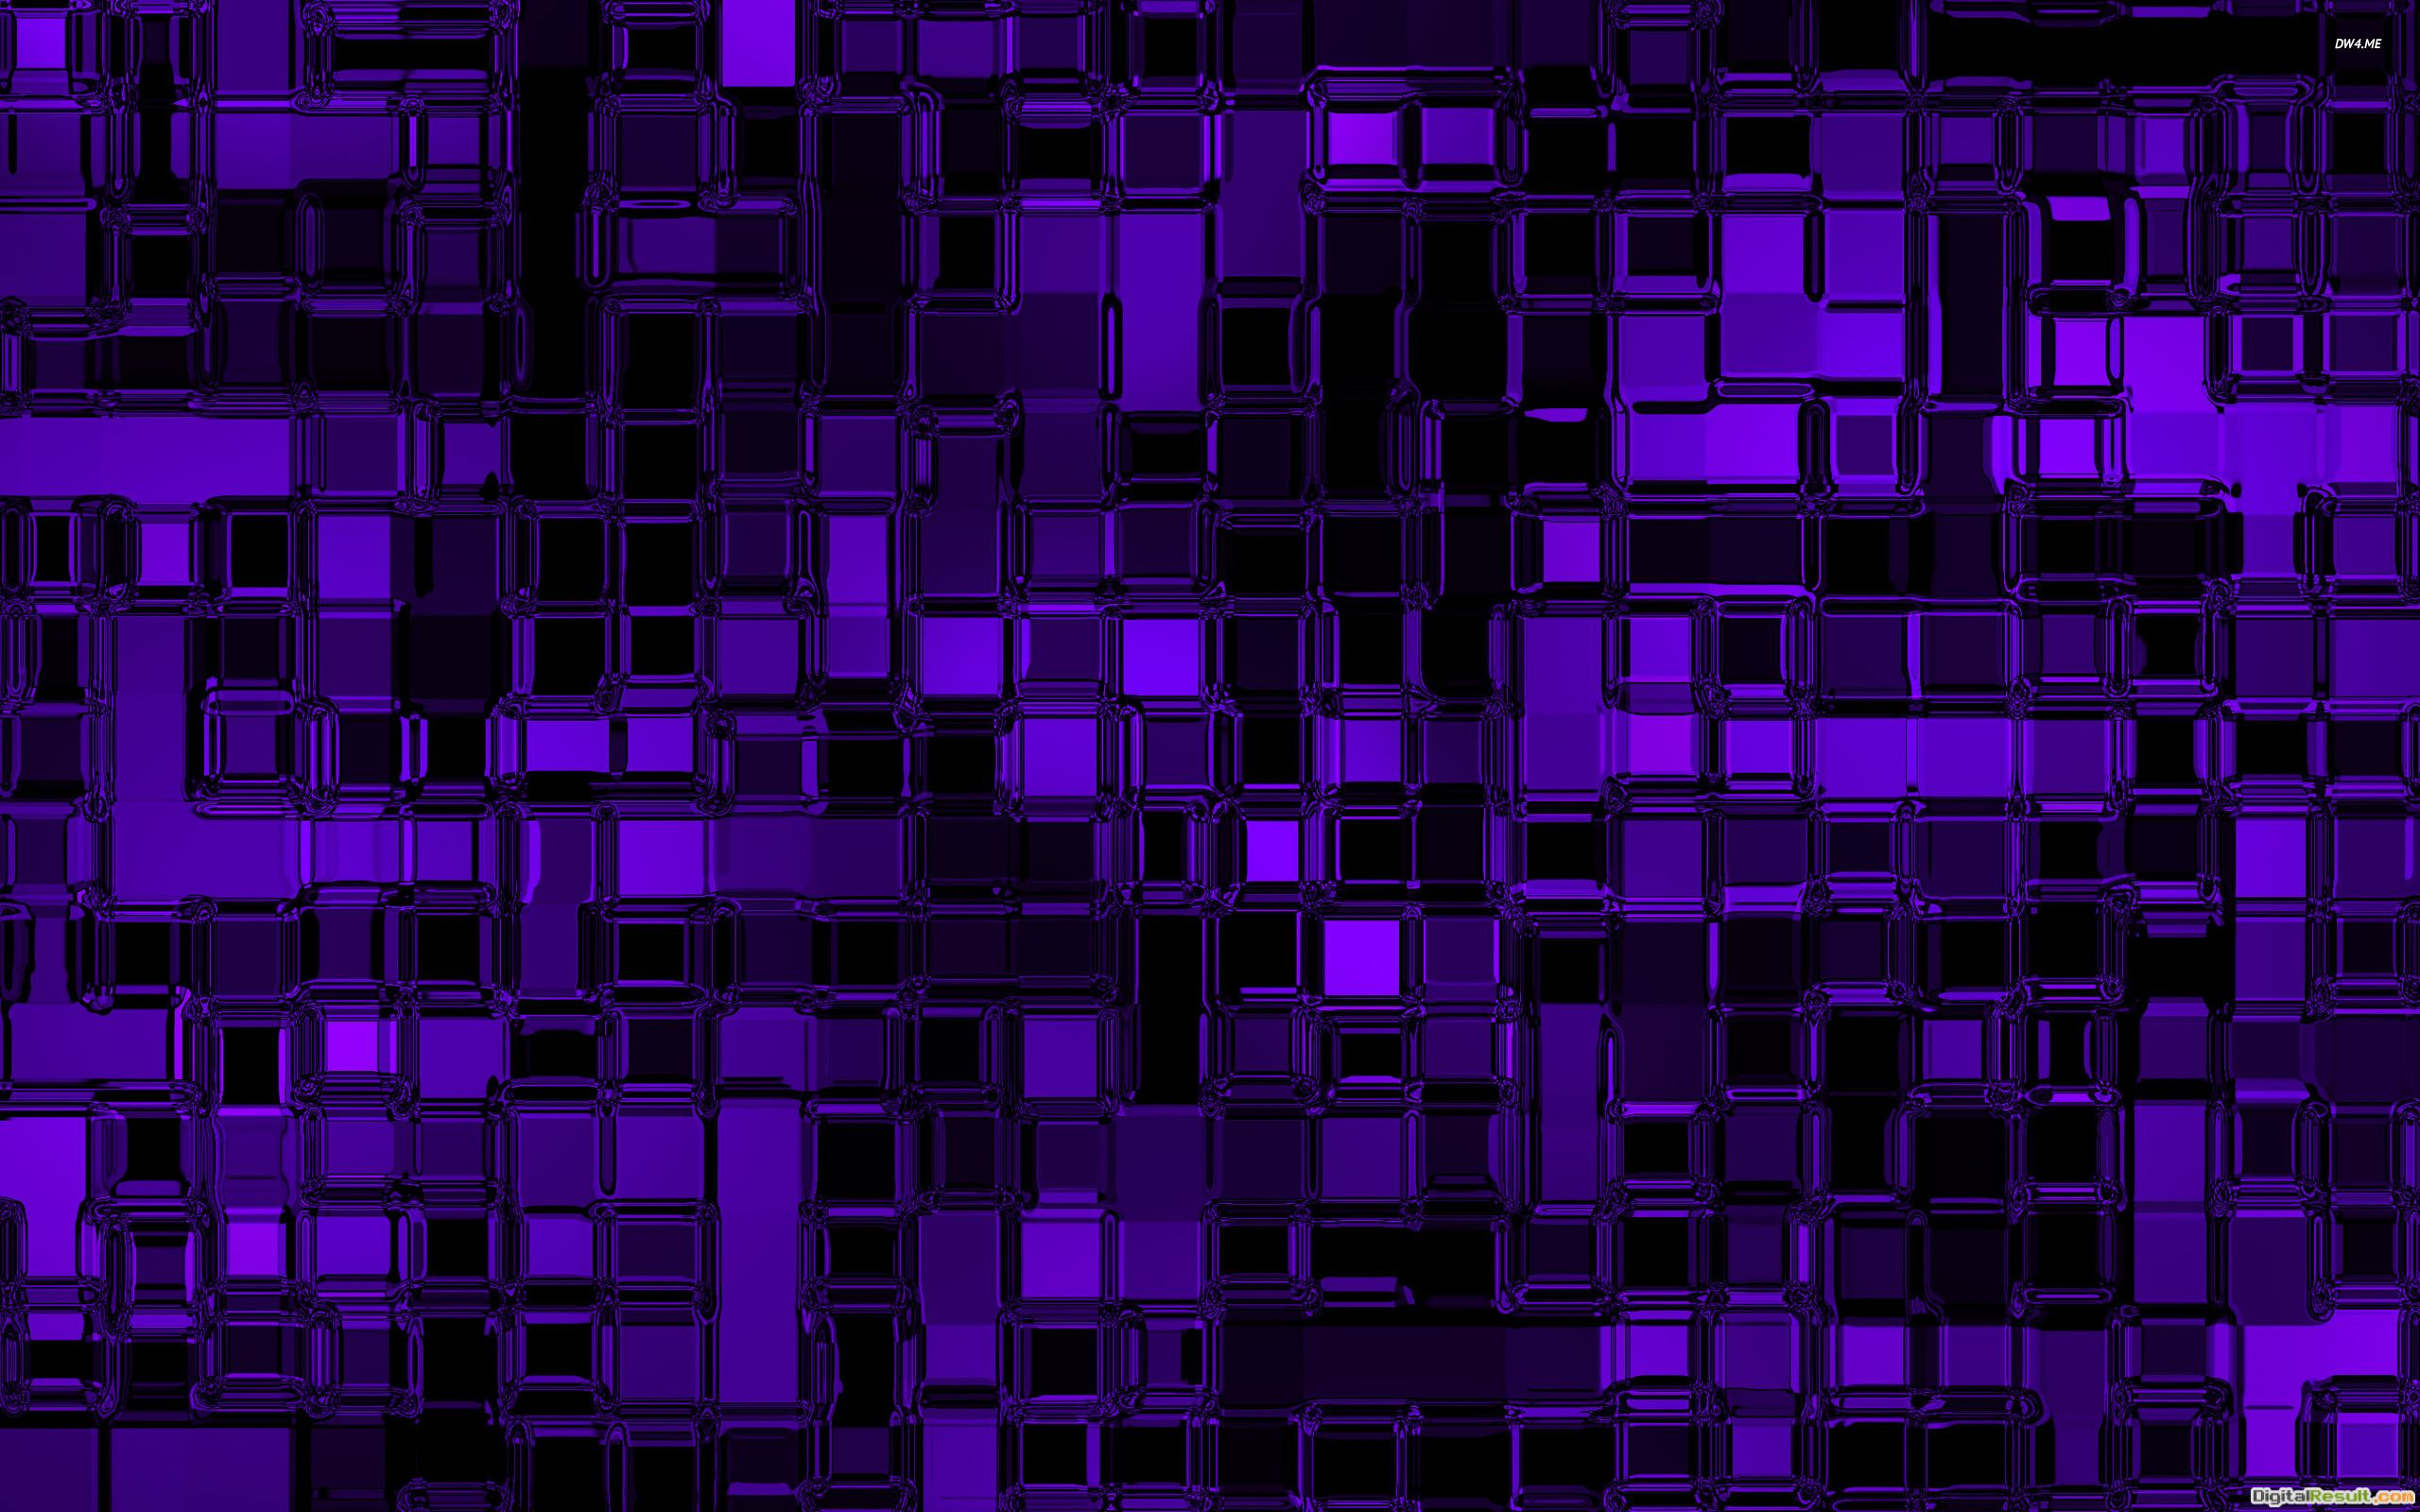 Purple glass cubes wallpaperAbstract wallpapers#1229 101